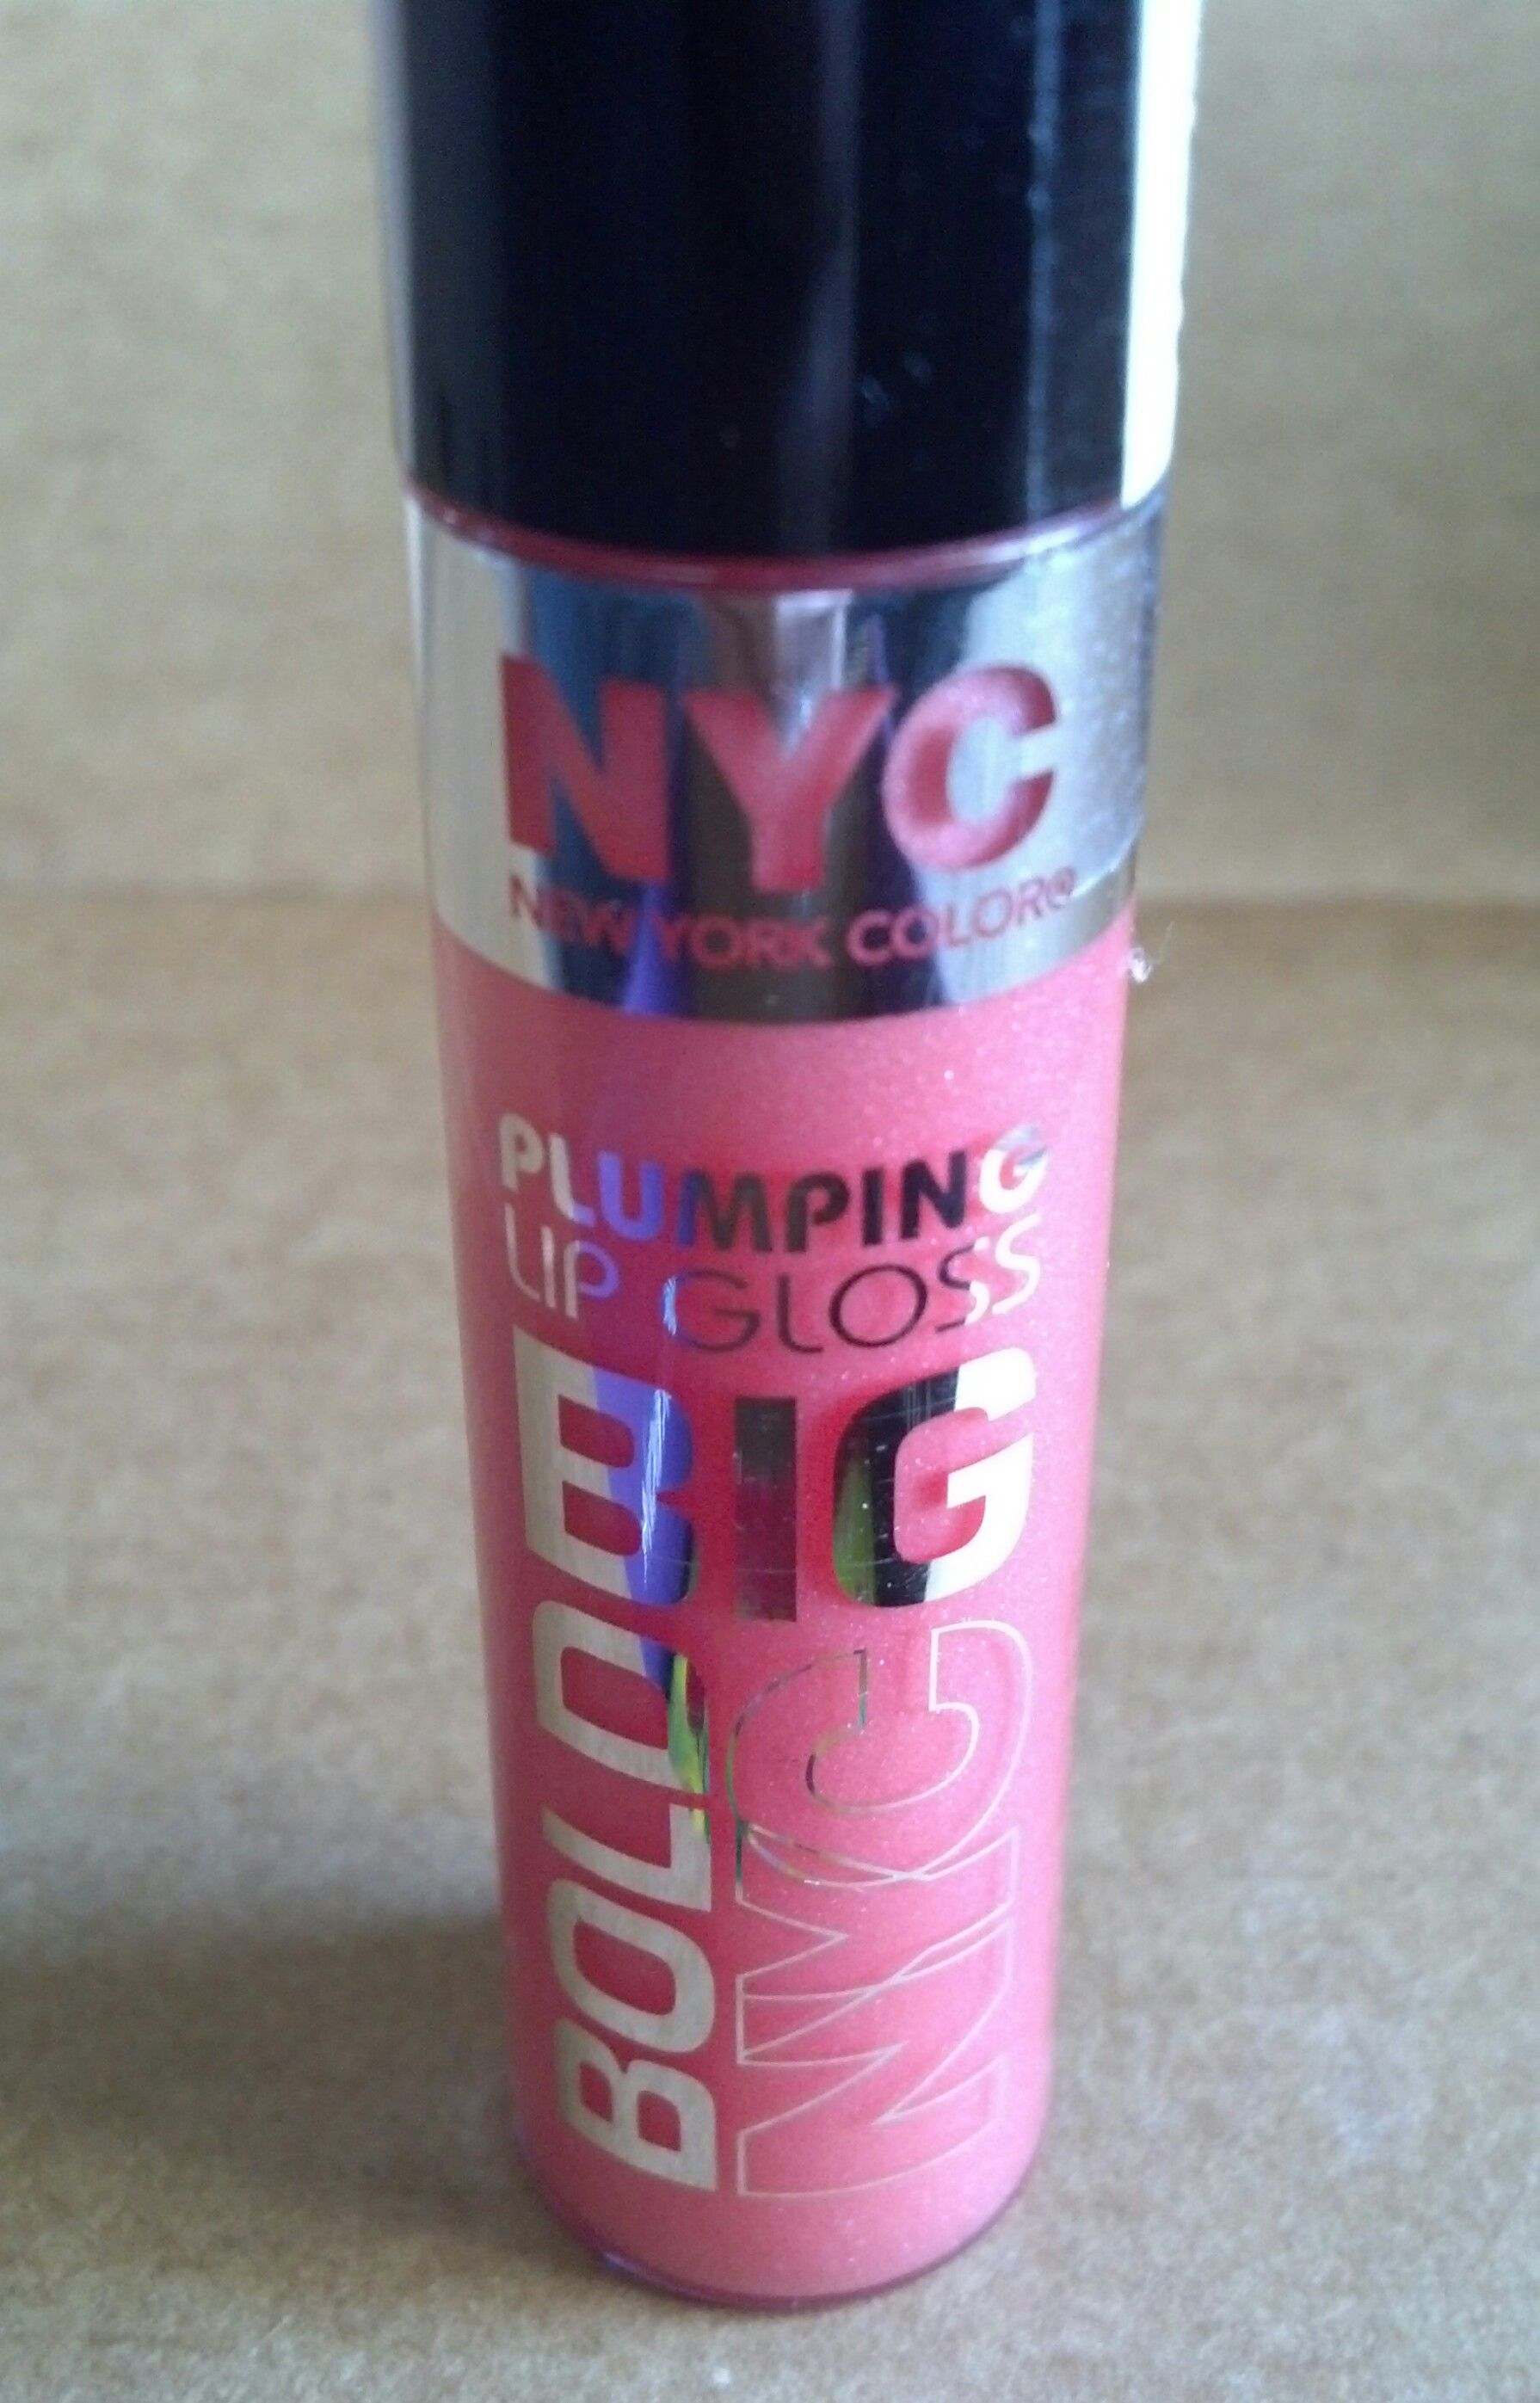 Okay, I love NYC. It's one of the cheap makeup brands that